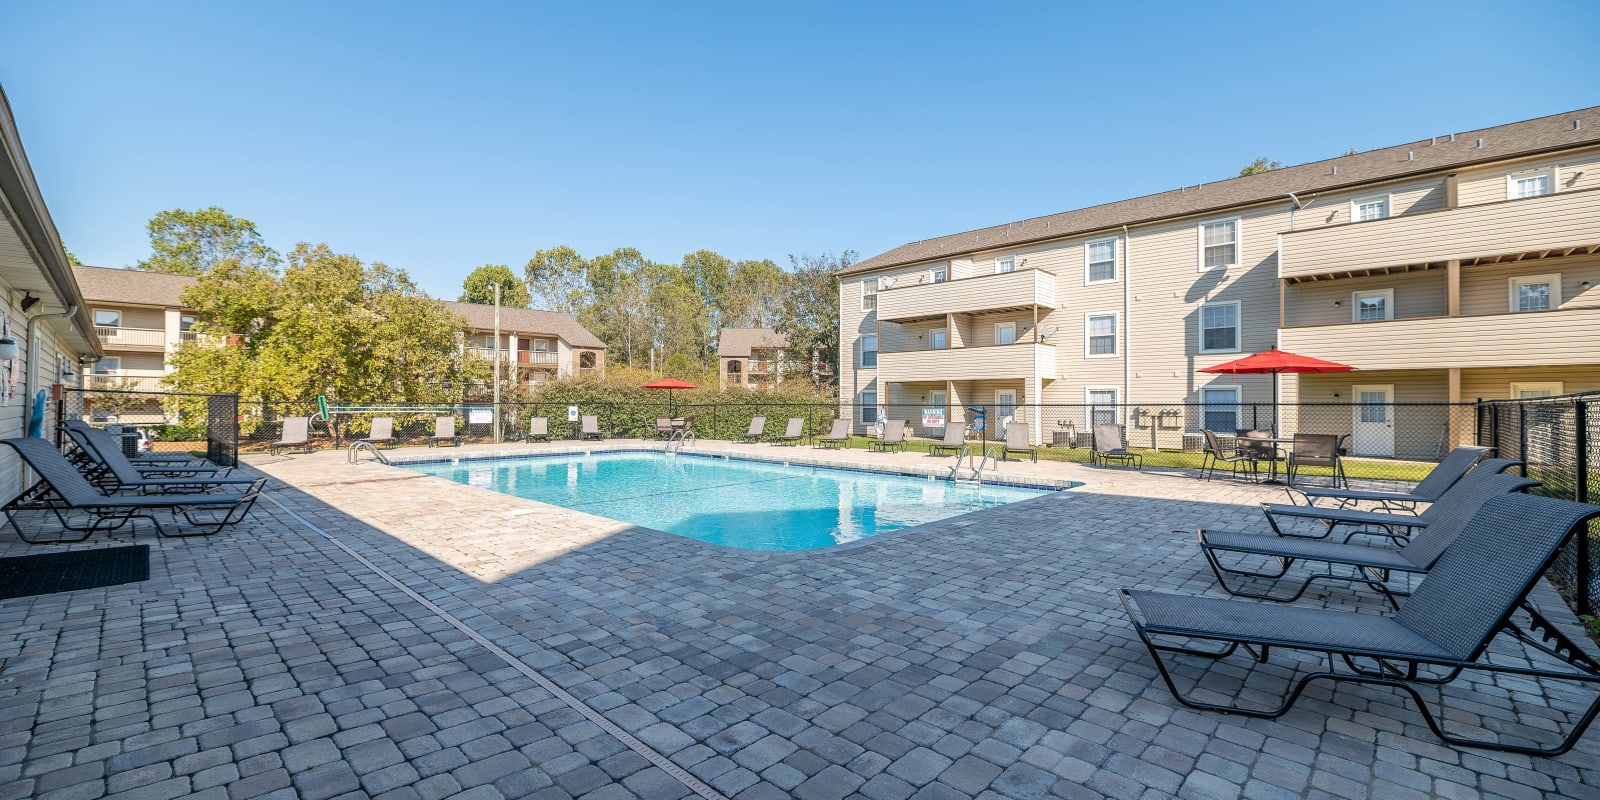 Pool at Parkway Station Apartment Homes in Concord, North Carolina